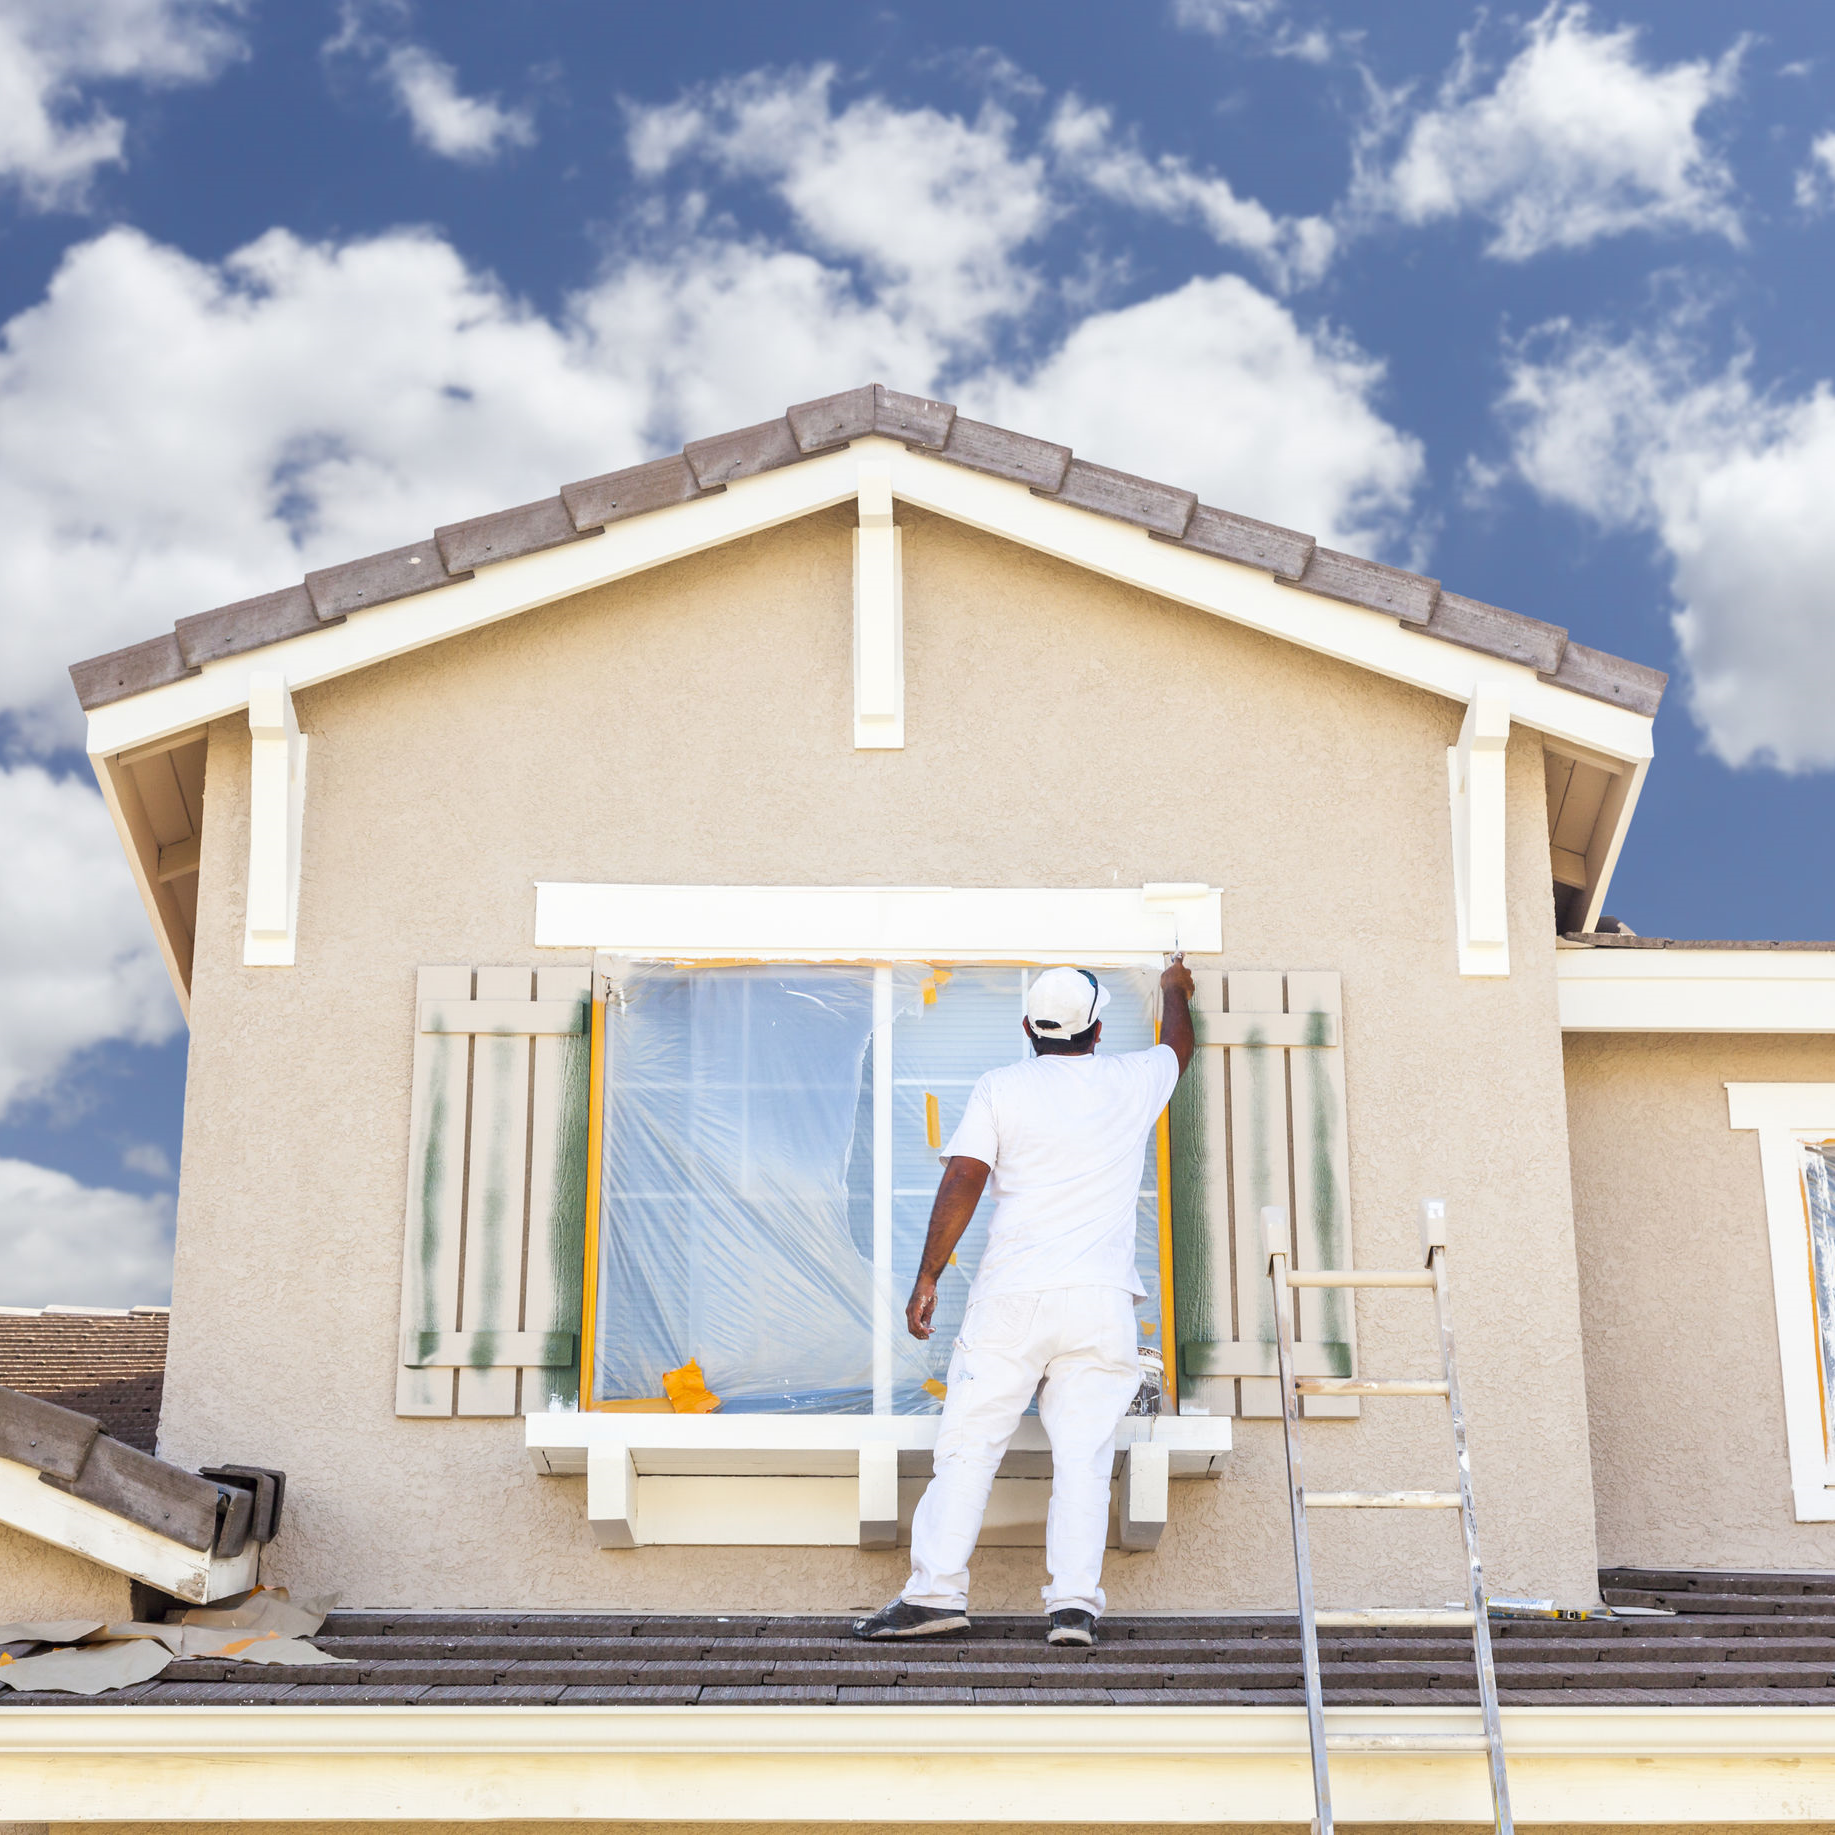 A painter painting a homes exterior.